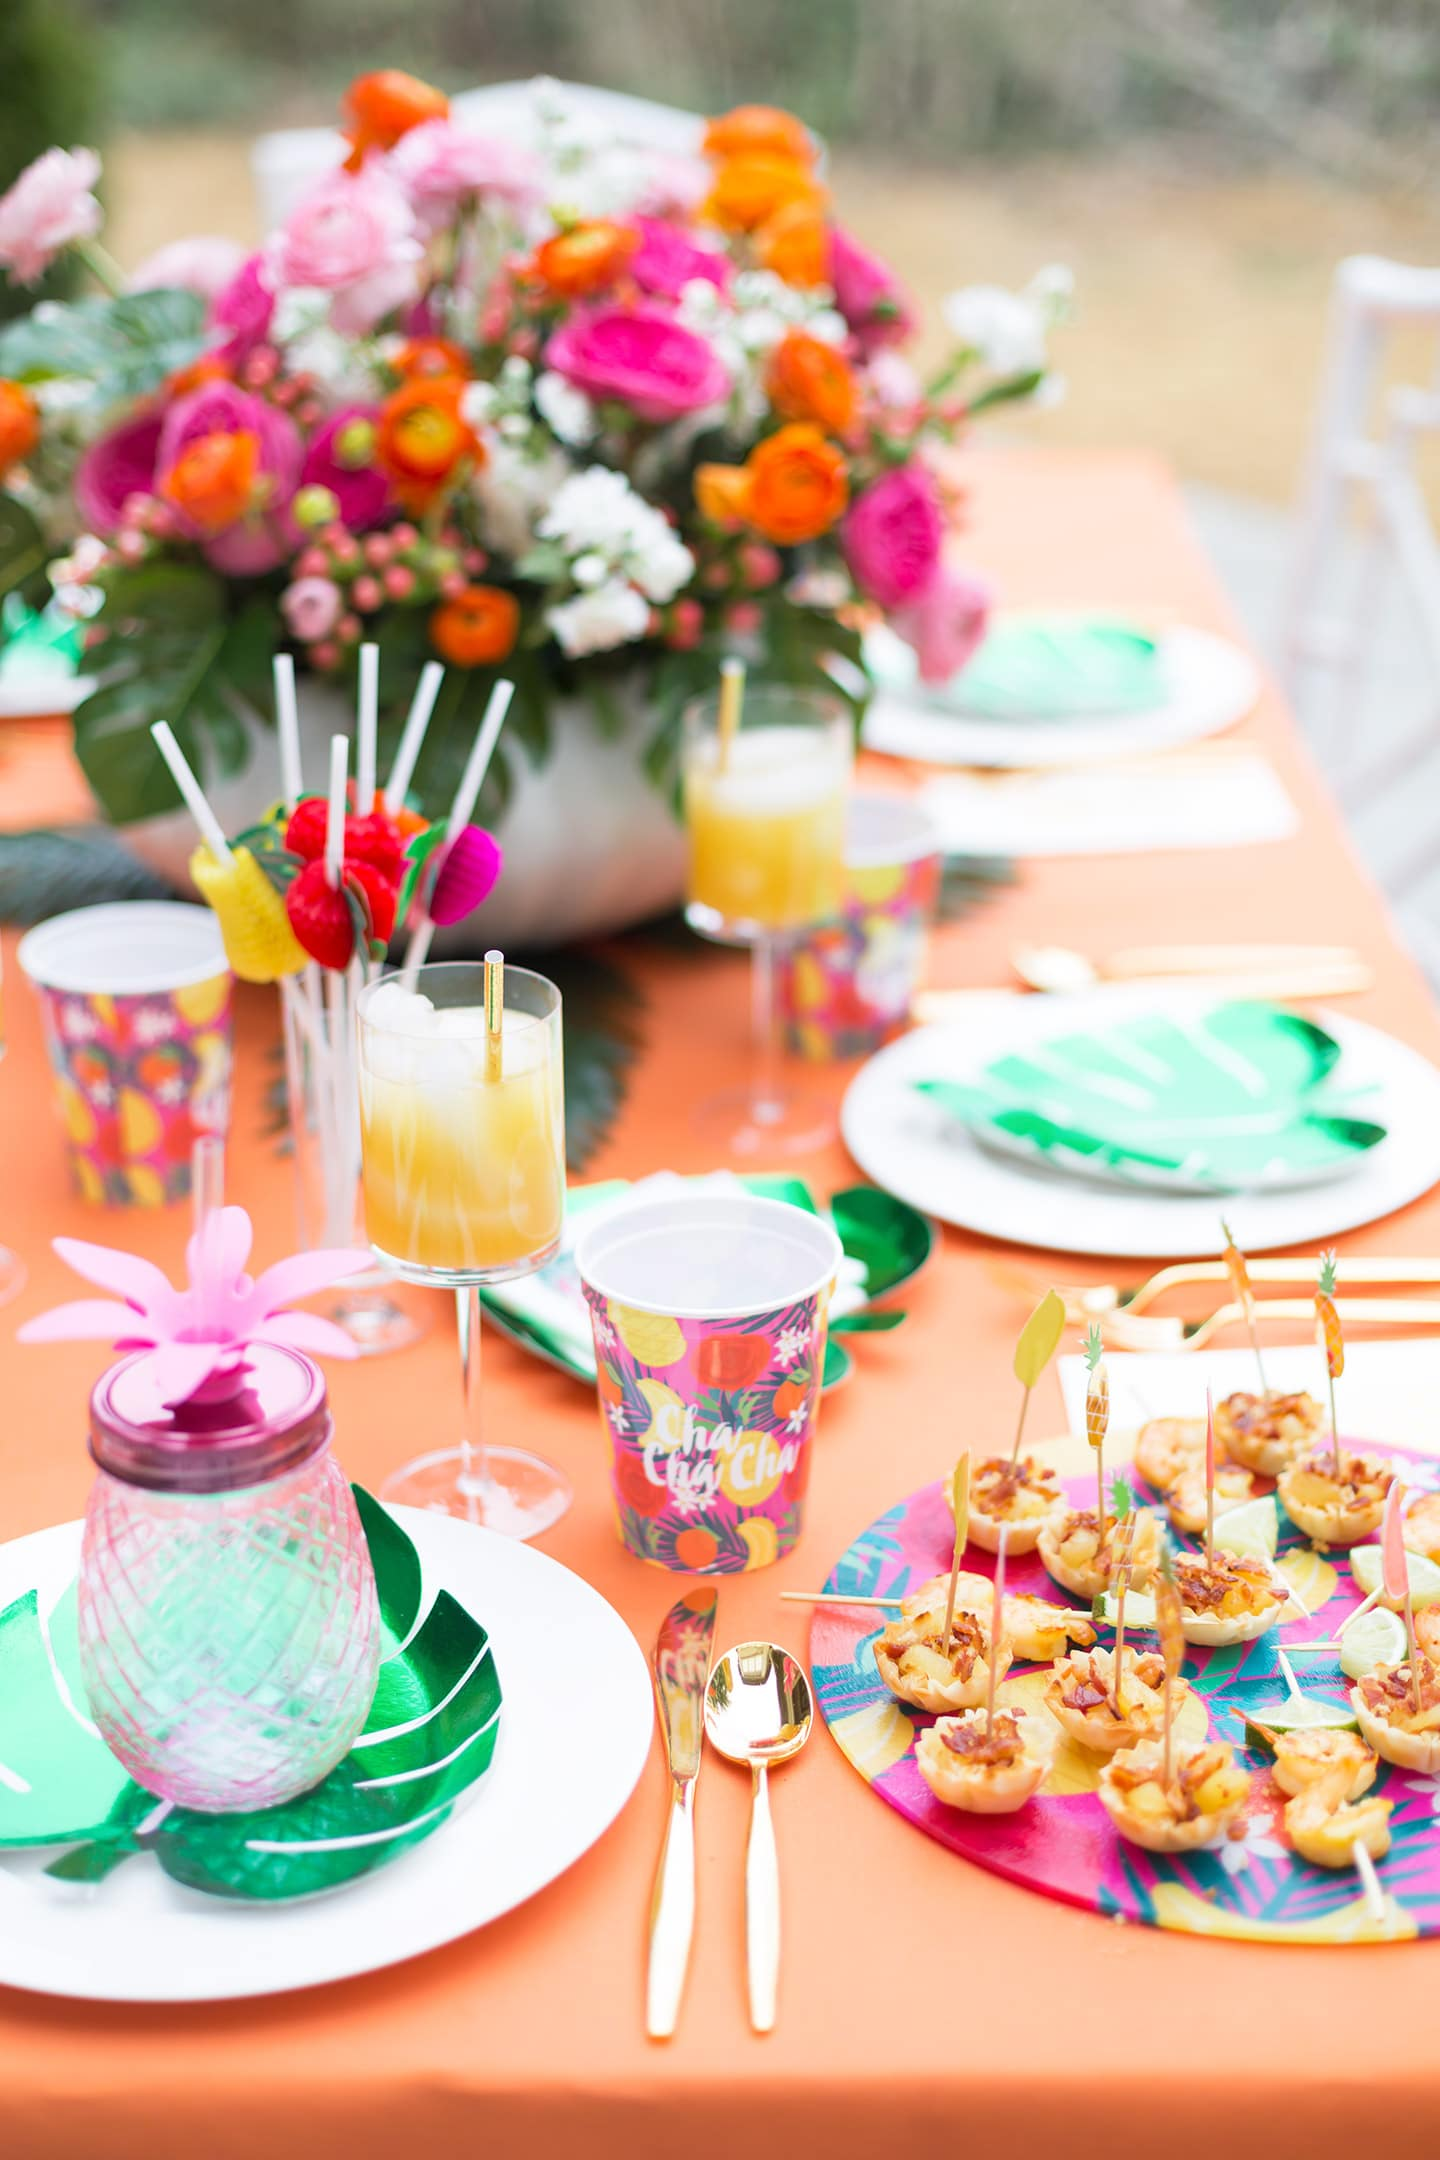 Host a Tropical Soiree with Pizzazzerie!